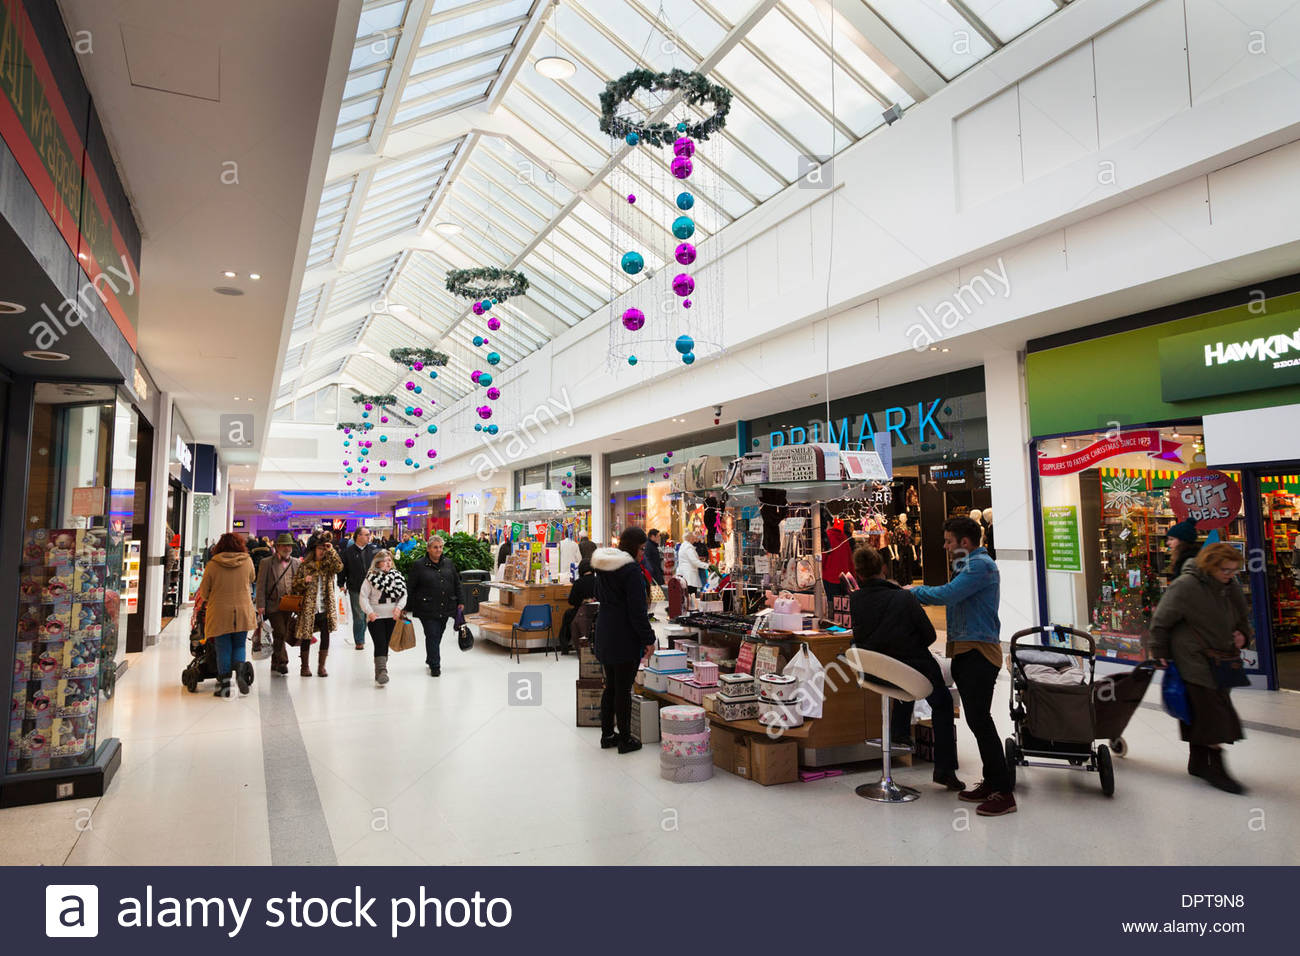 Cascades shopping mall Portsmouth with temporary stalls. - Stock Image